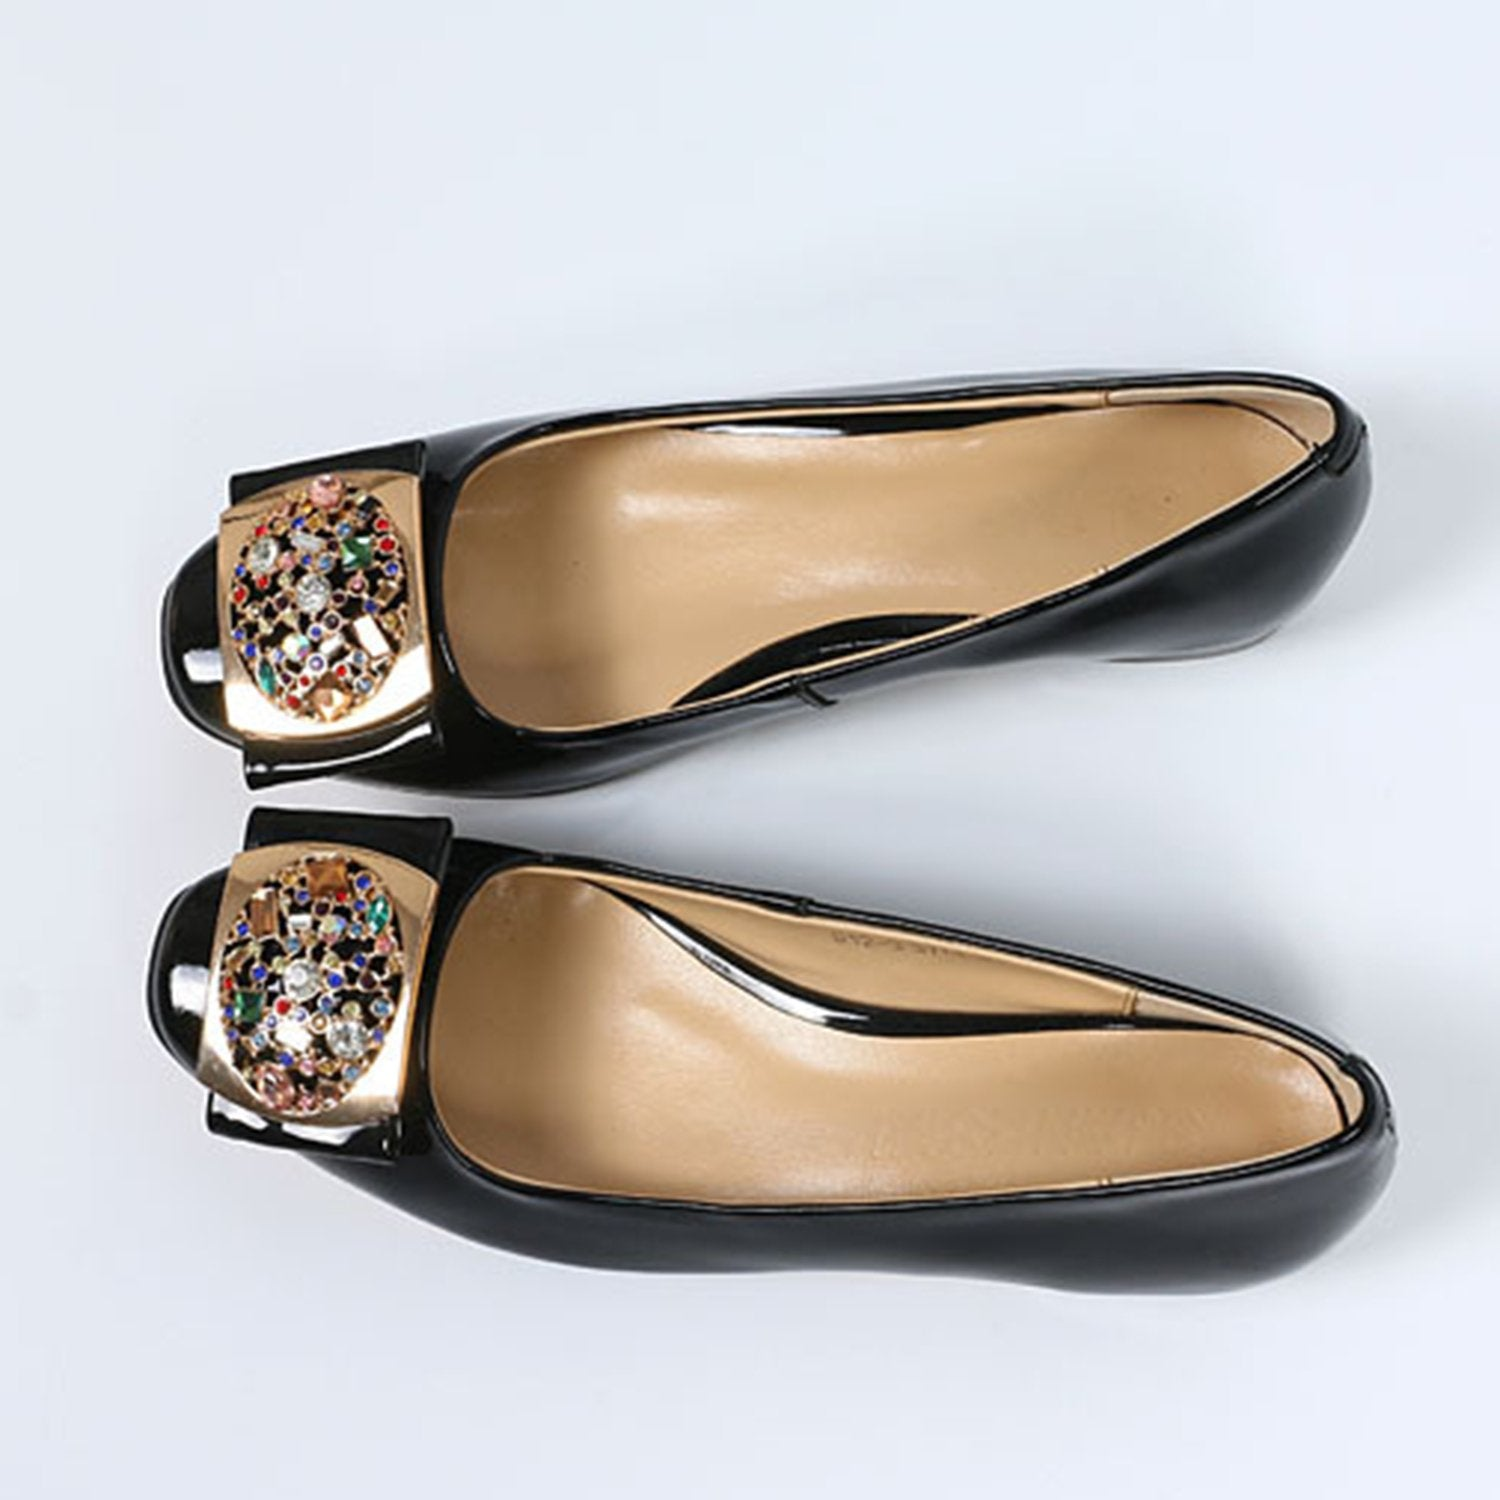 Rhinestone Patent Leather Loafers